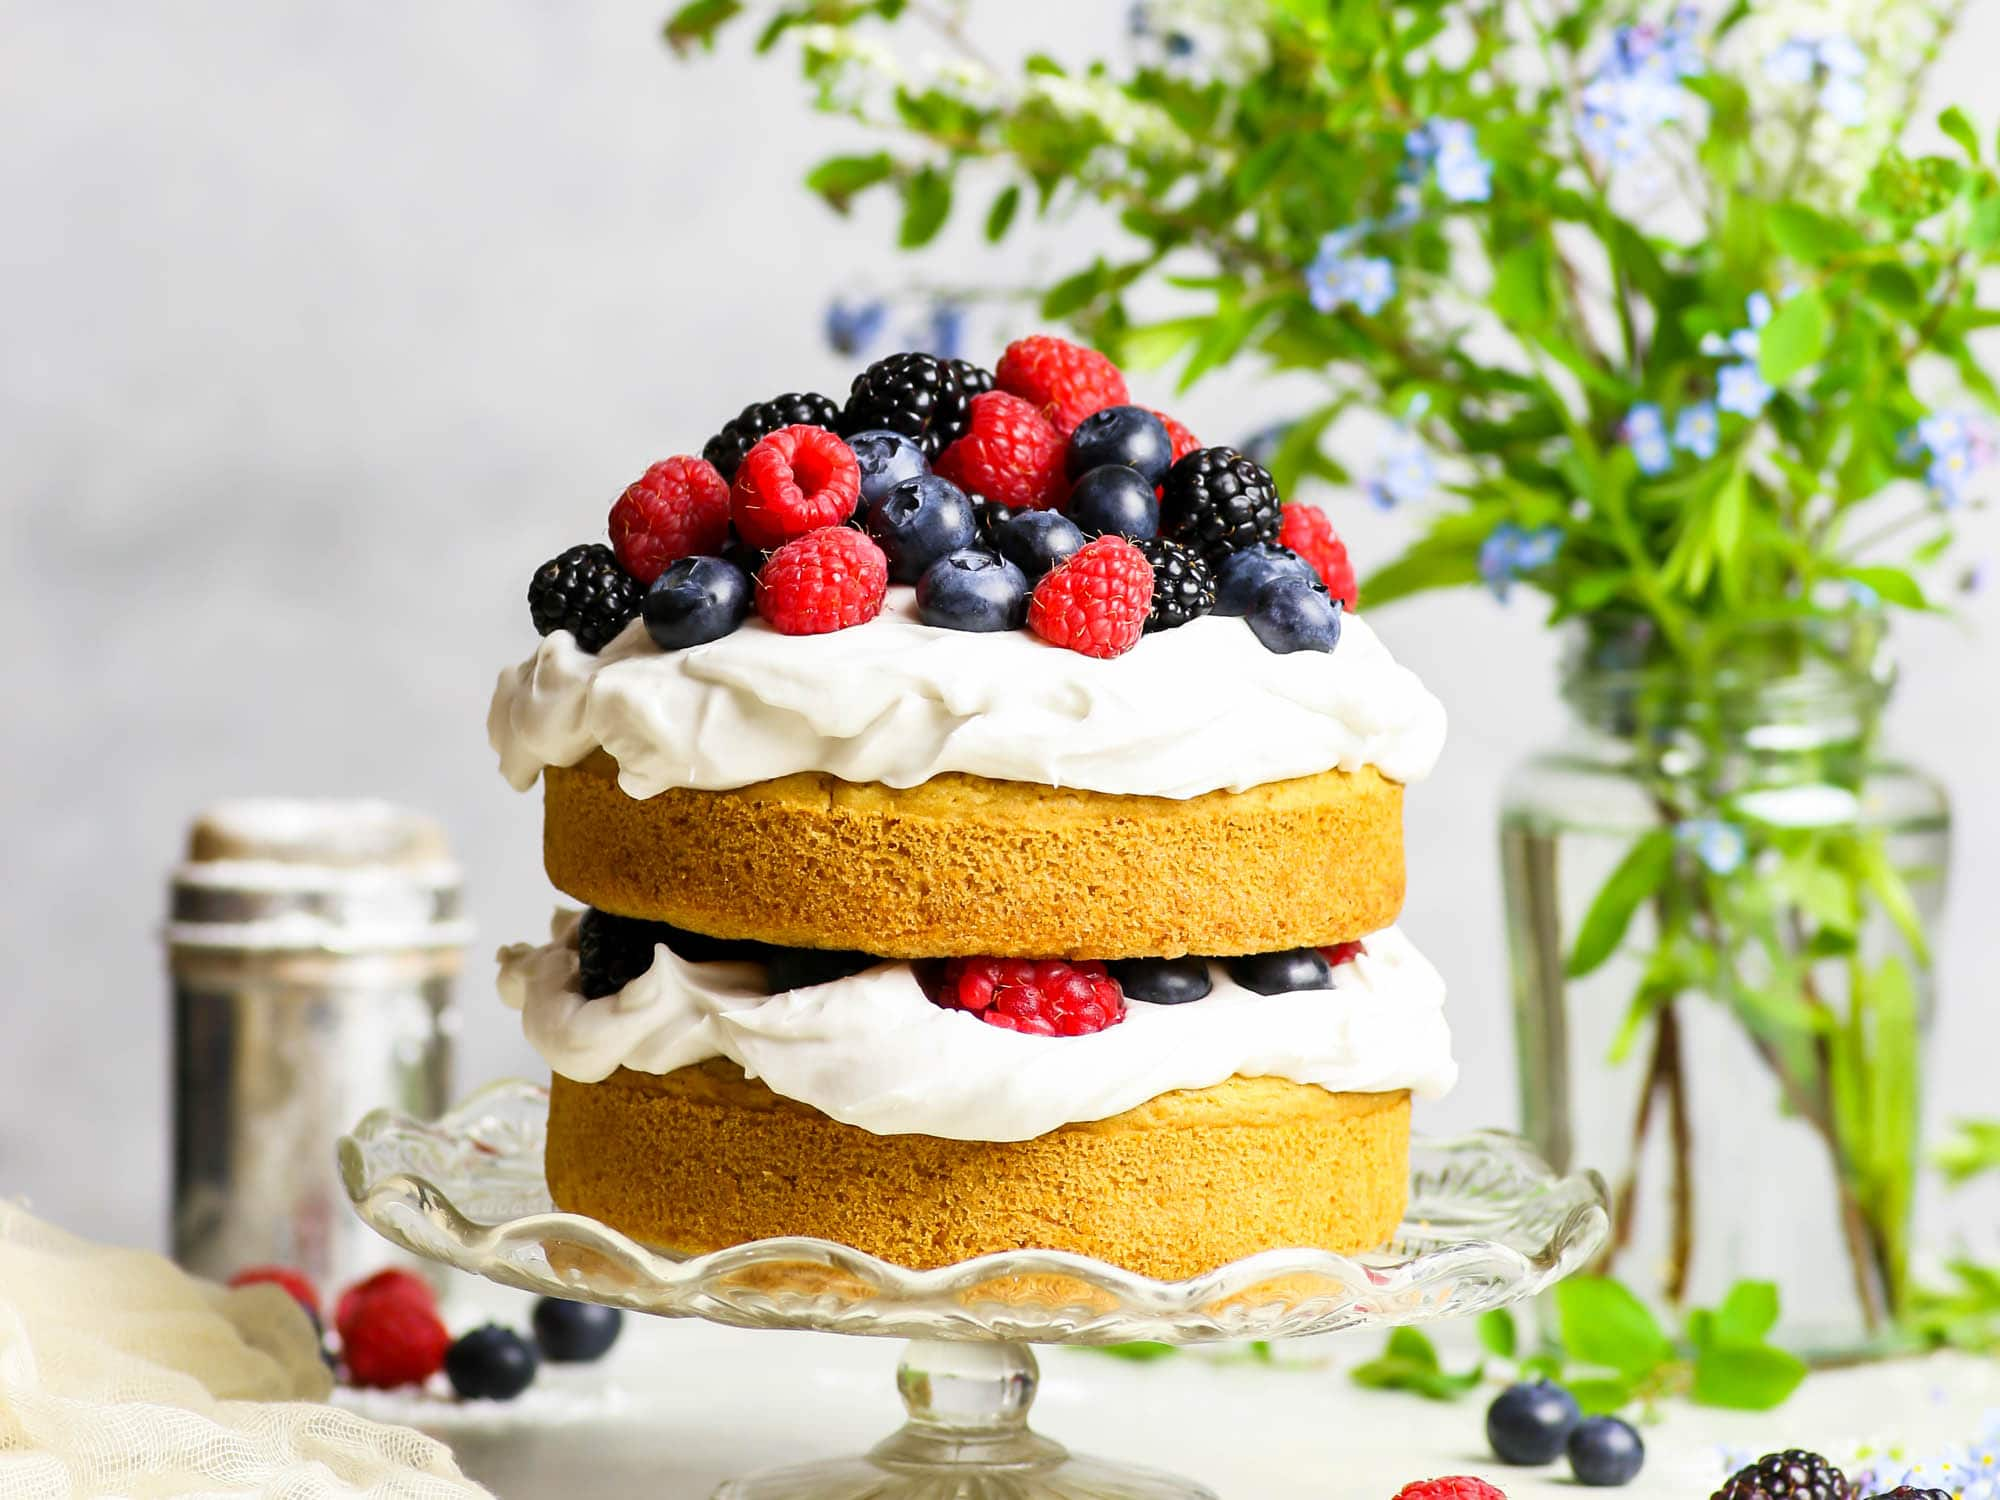 Gluten free vegan vanilla layer cake with summer berries and coconut cream frosting on a glass cake stand. A vase full of foliage and flowers is in the background.